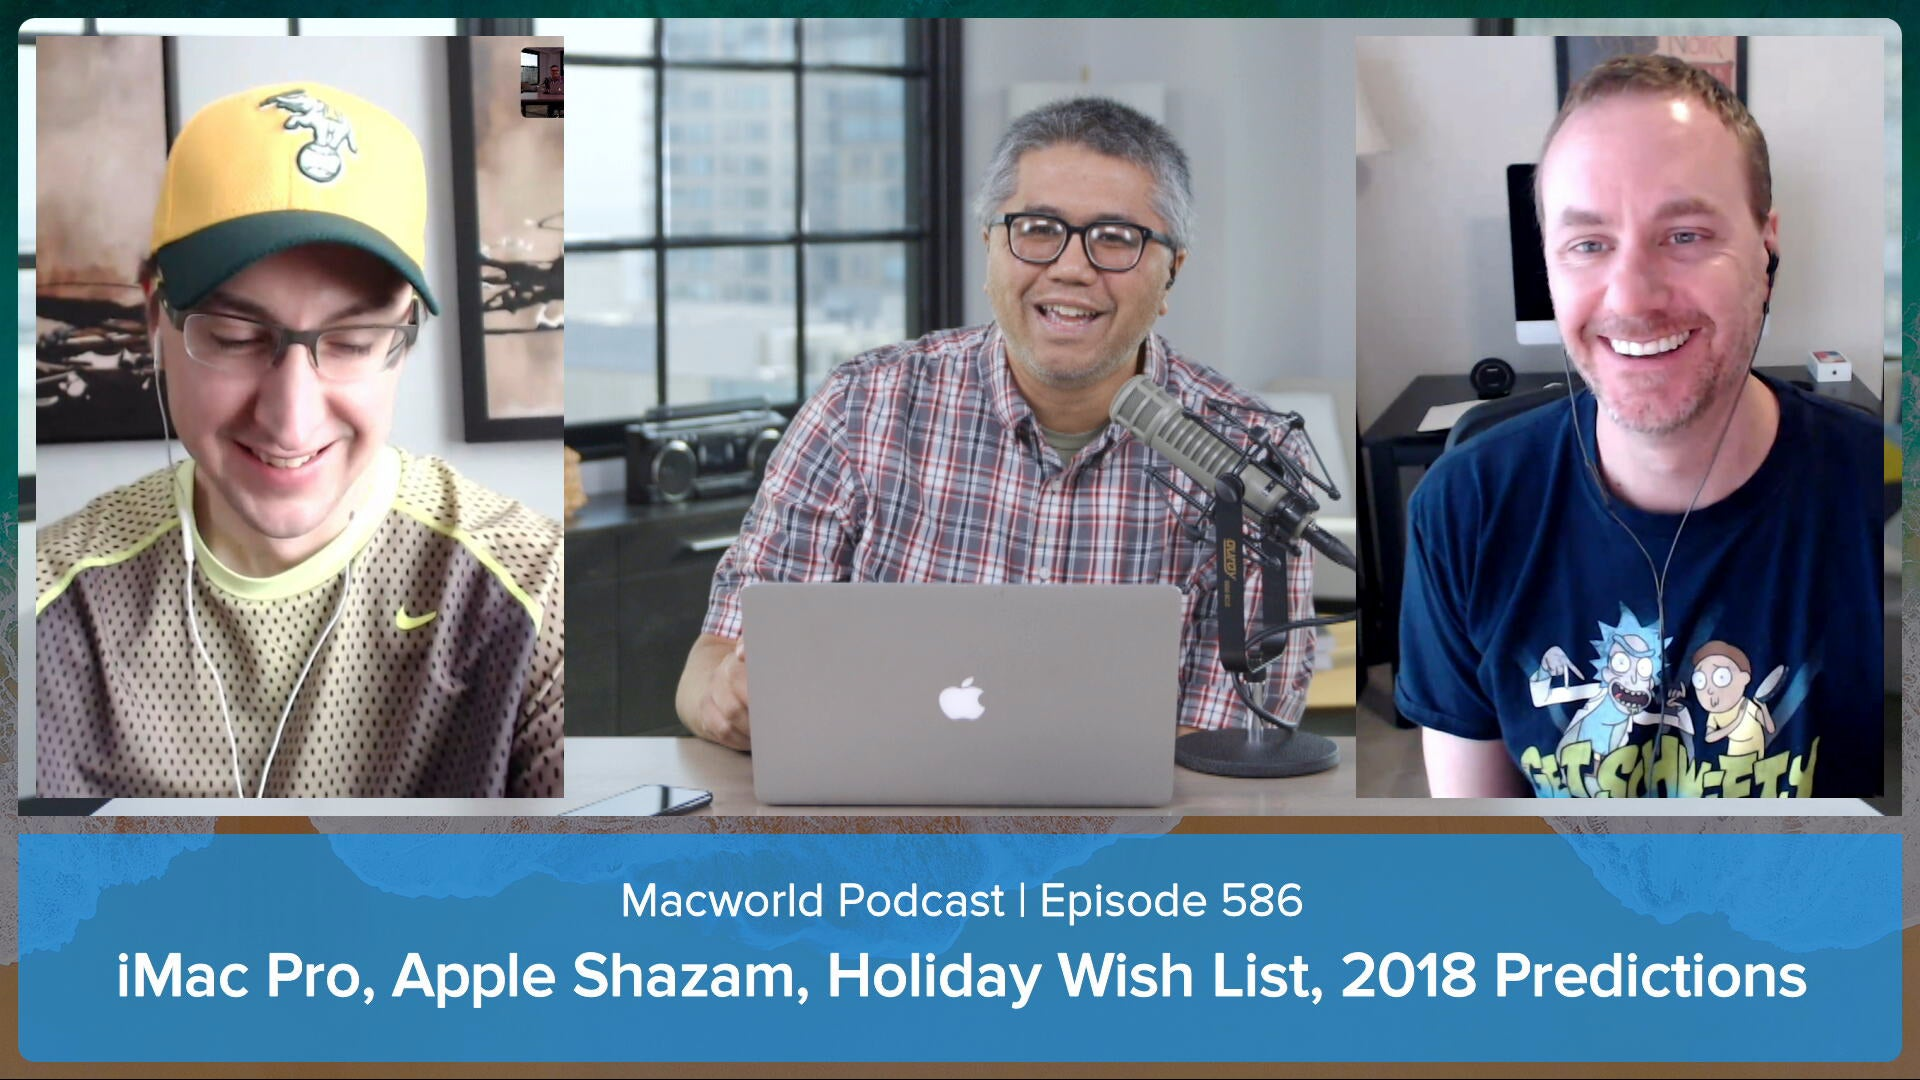 Macworld Podcast Episode 586